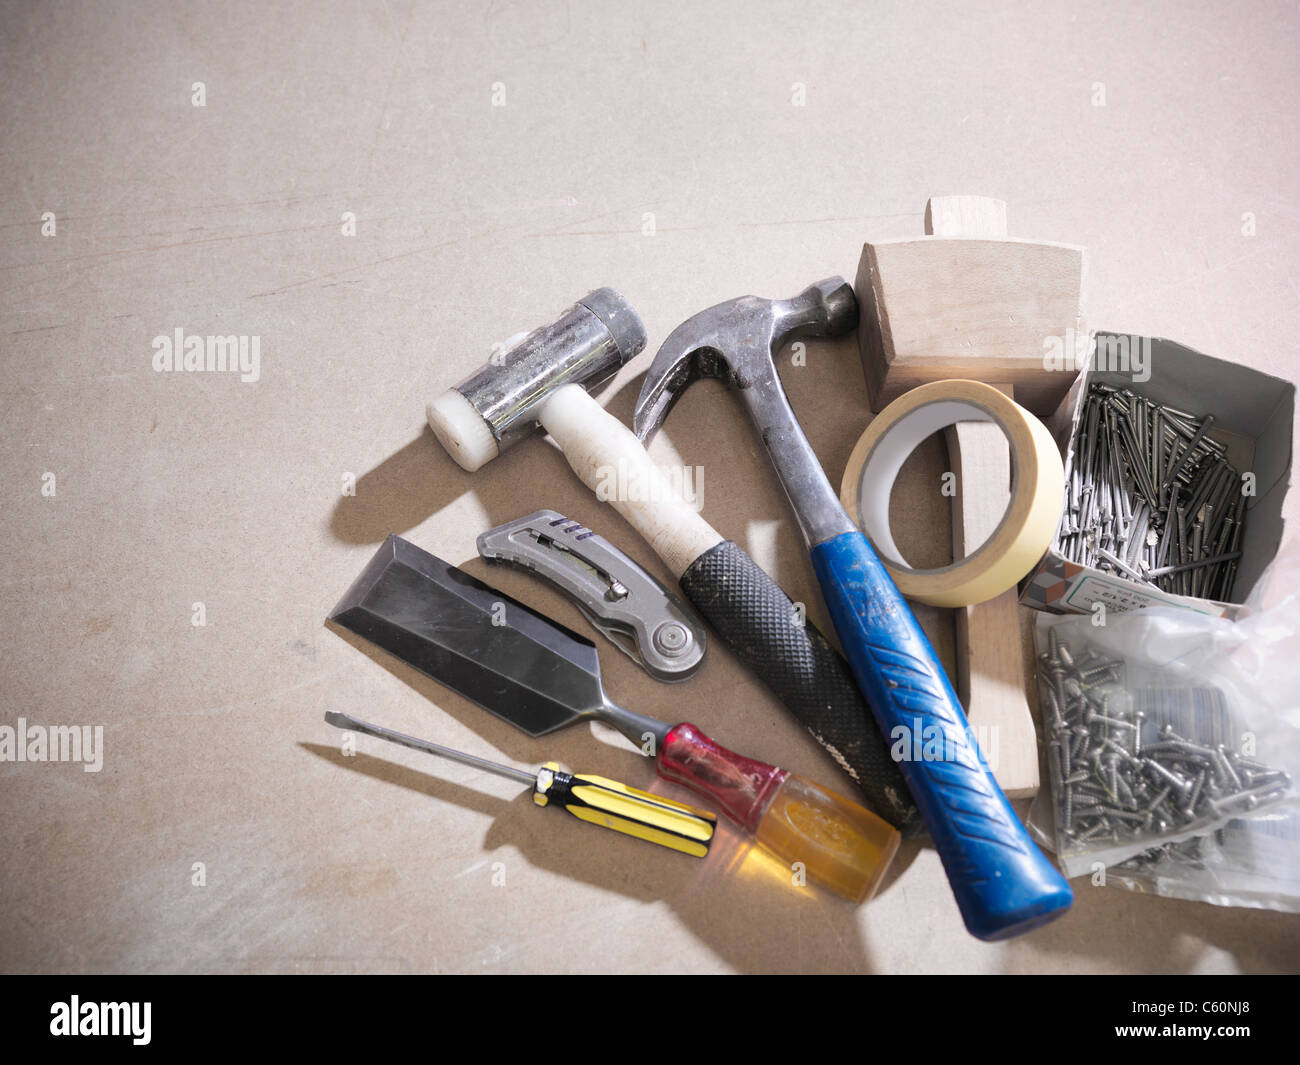 Assorted tools on work surface - Stock Image